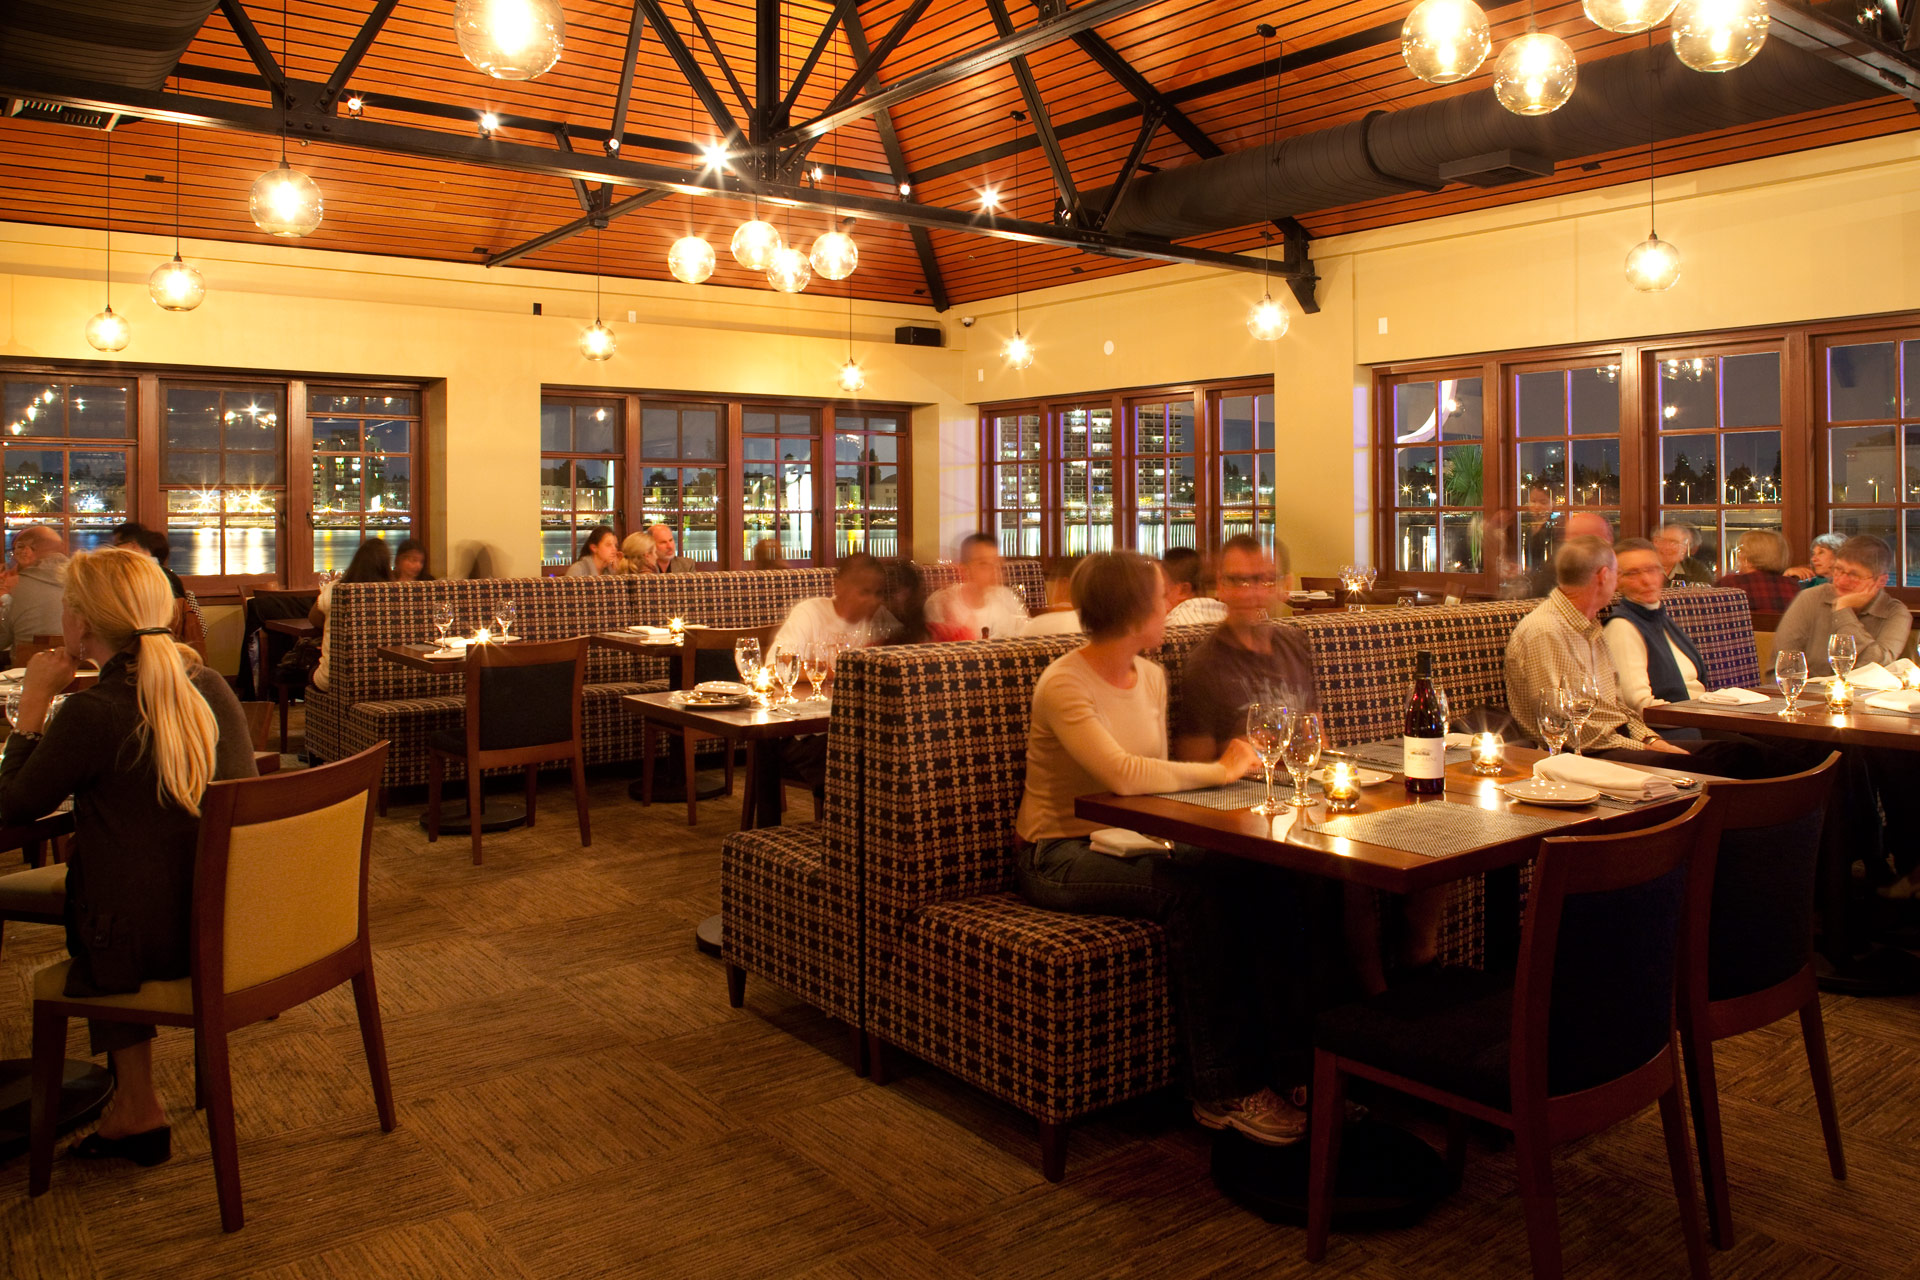 Lake Chalet restaurant interiors